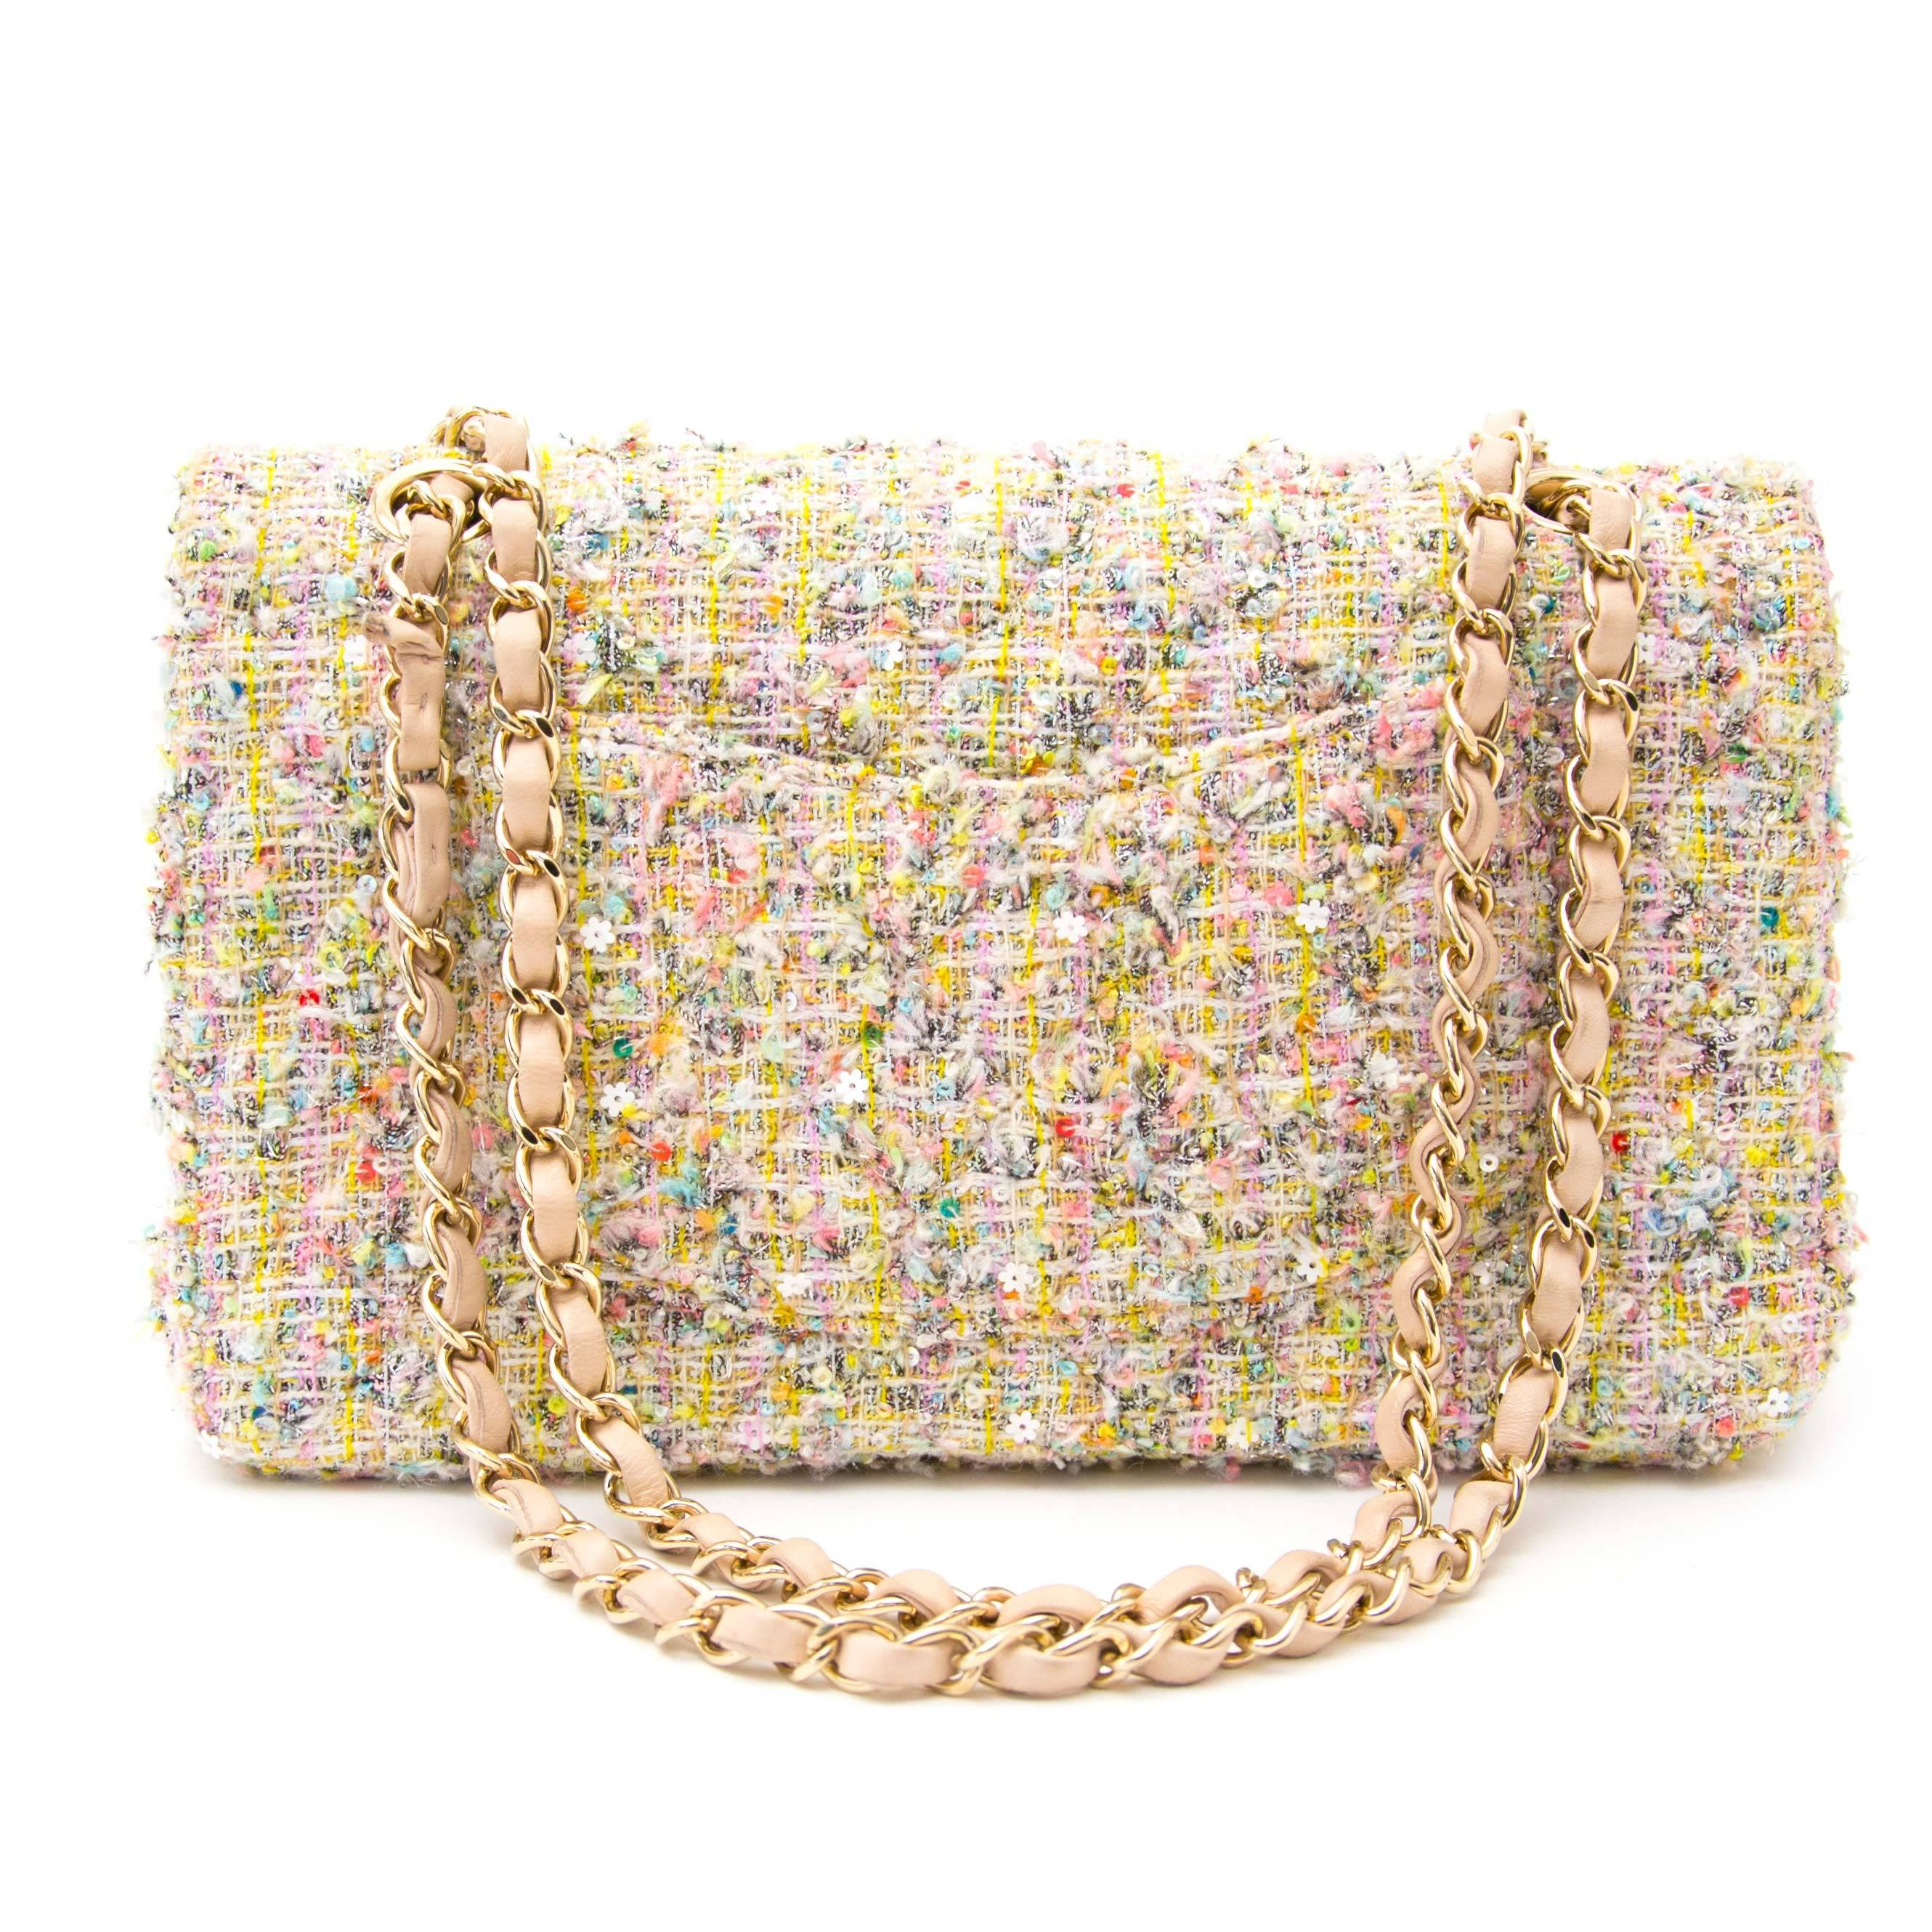 903adf6ce339 Chanel Tweed Garden Party 2.55 Reissue Flap Bag at 1stdibs